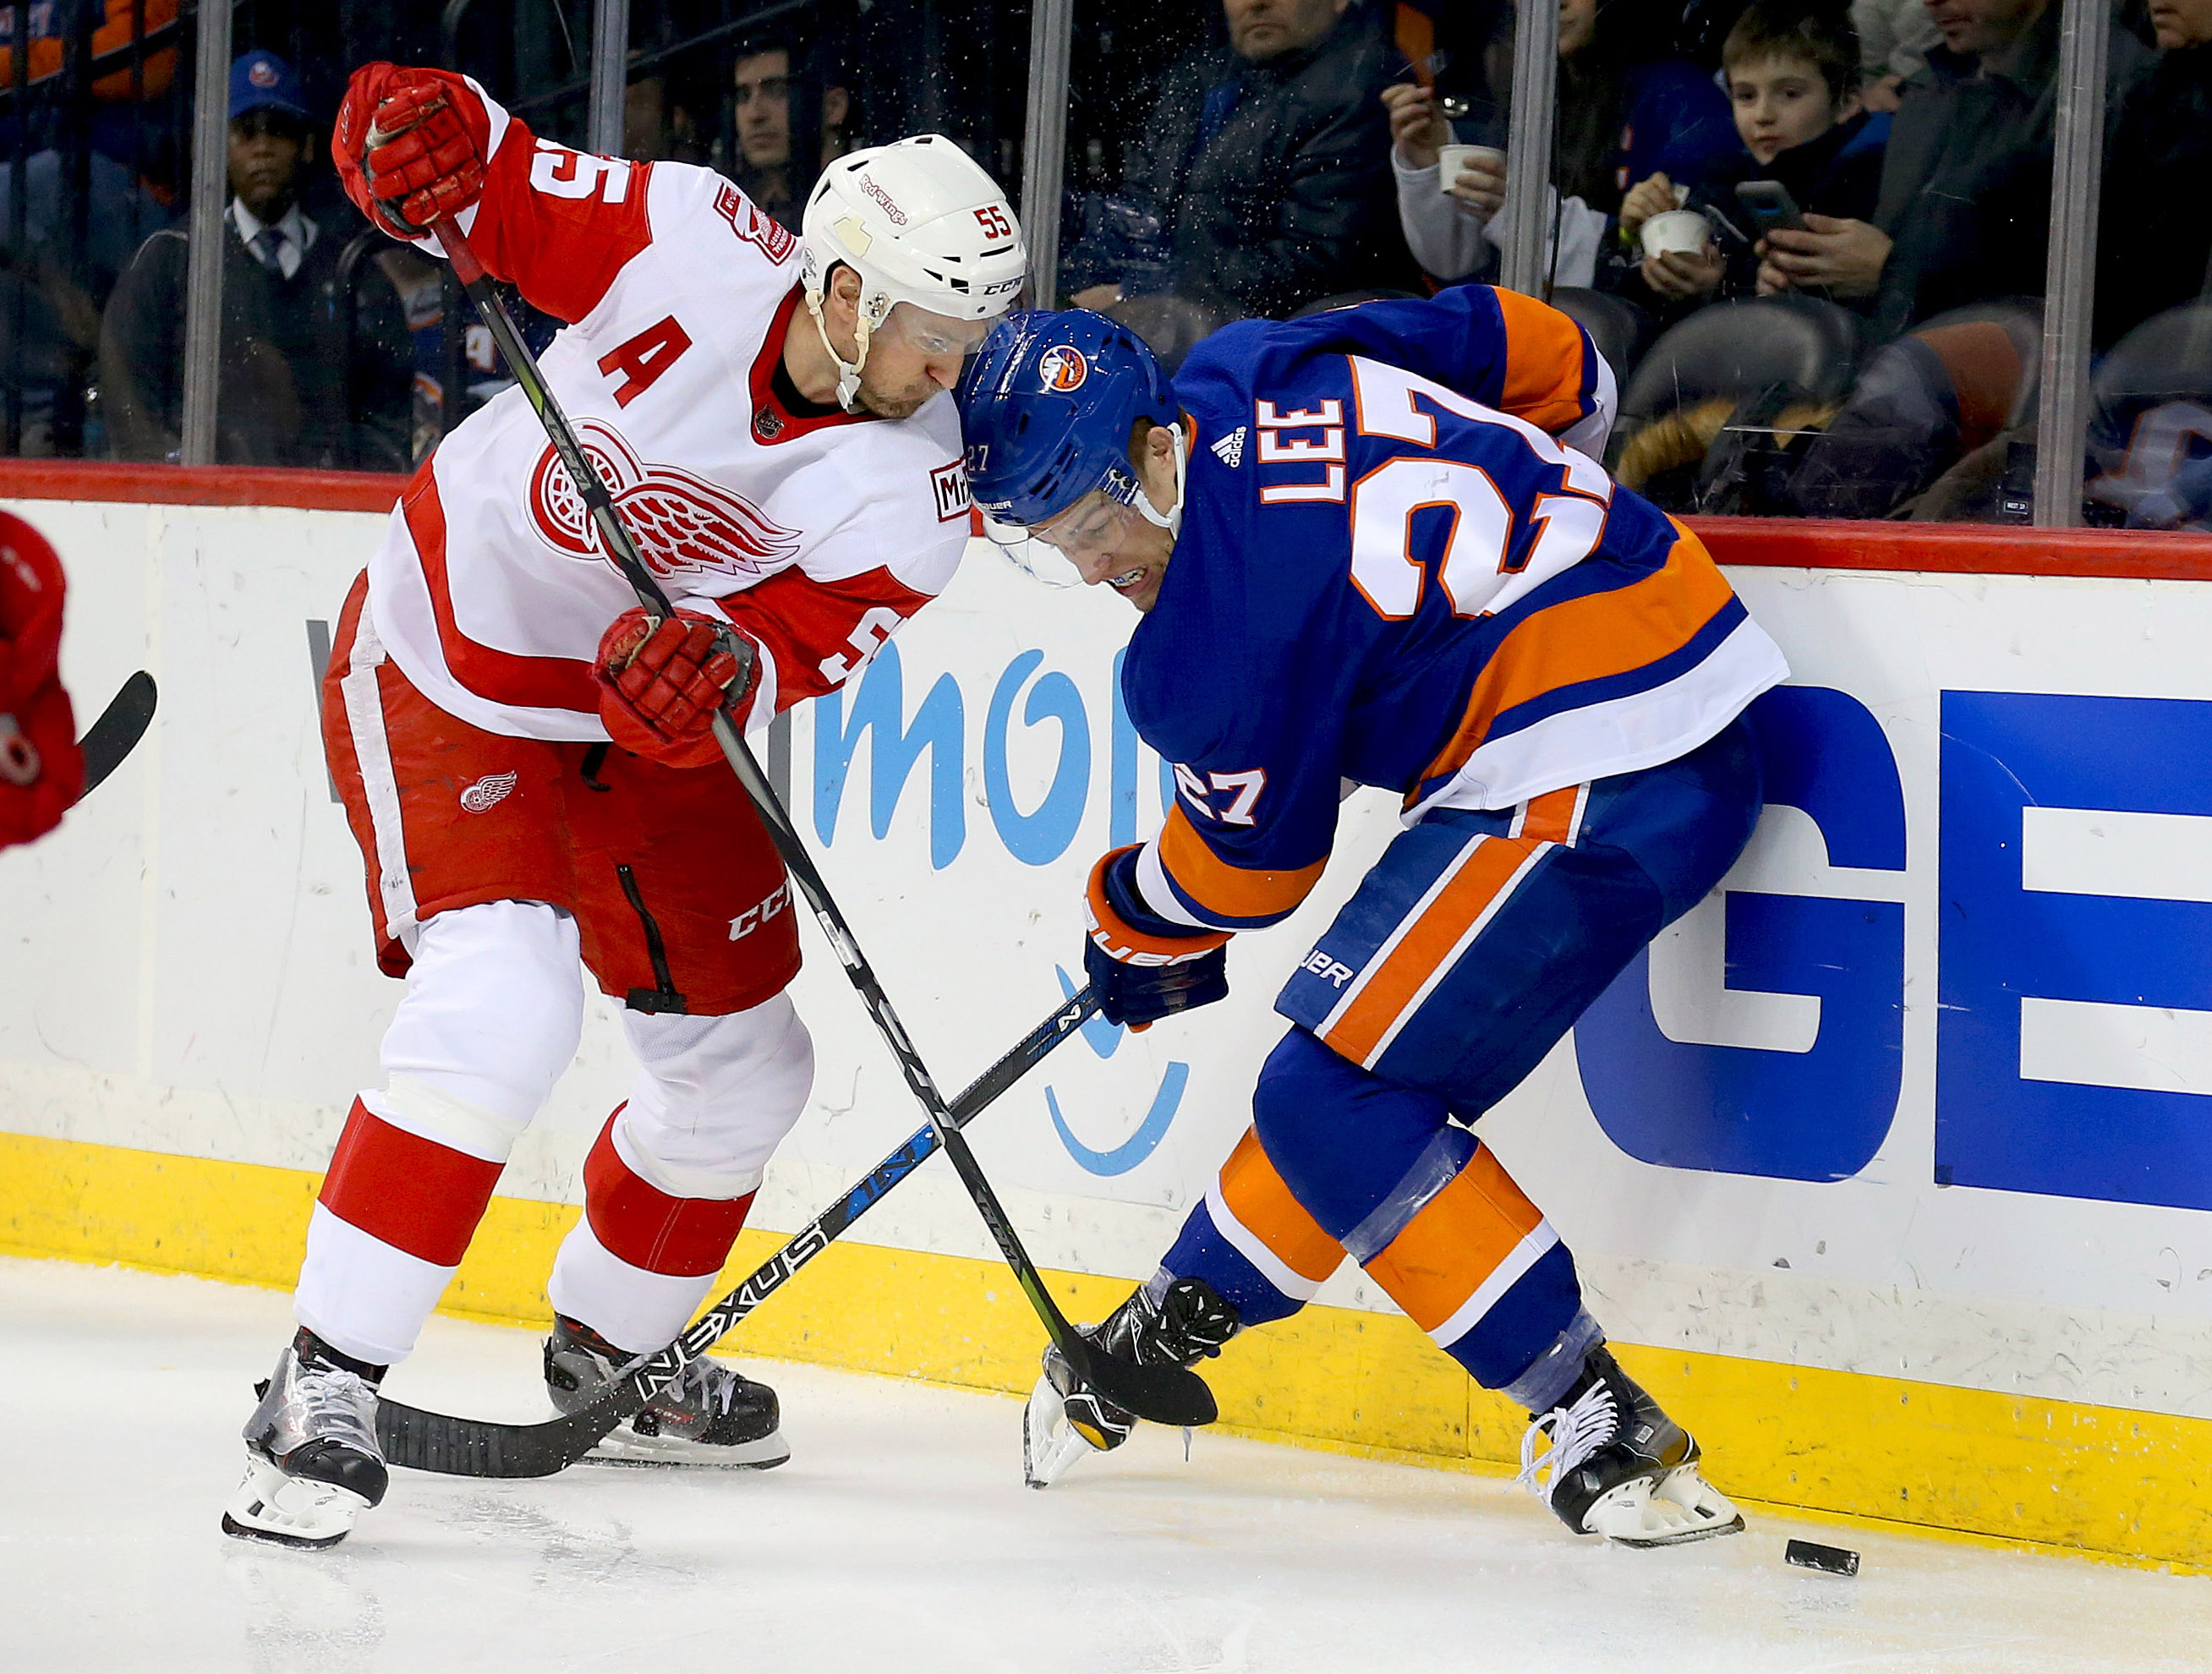 Islanders look for points not vengeance in rematch with Red Wings